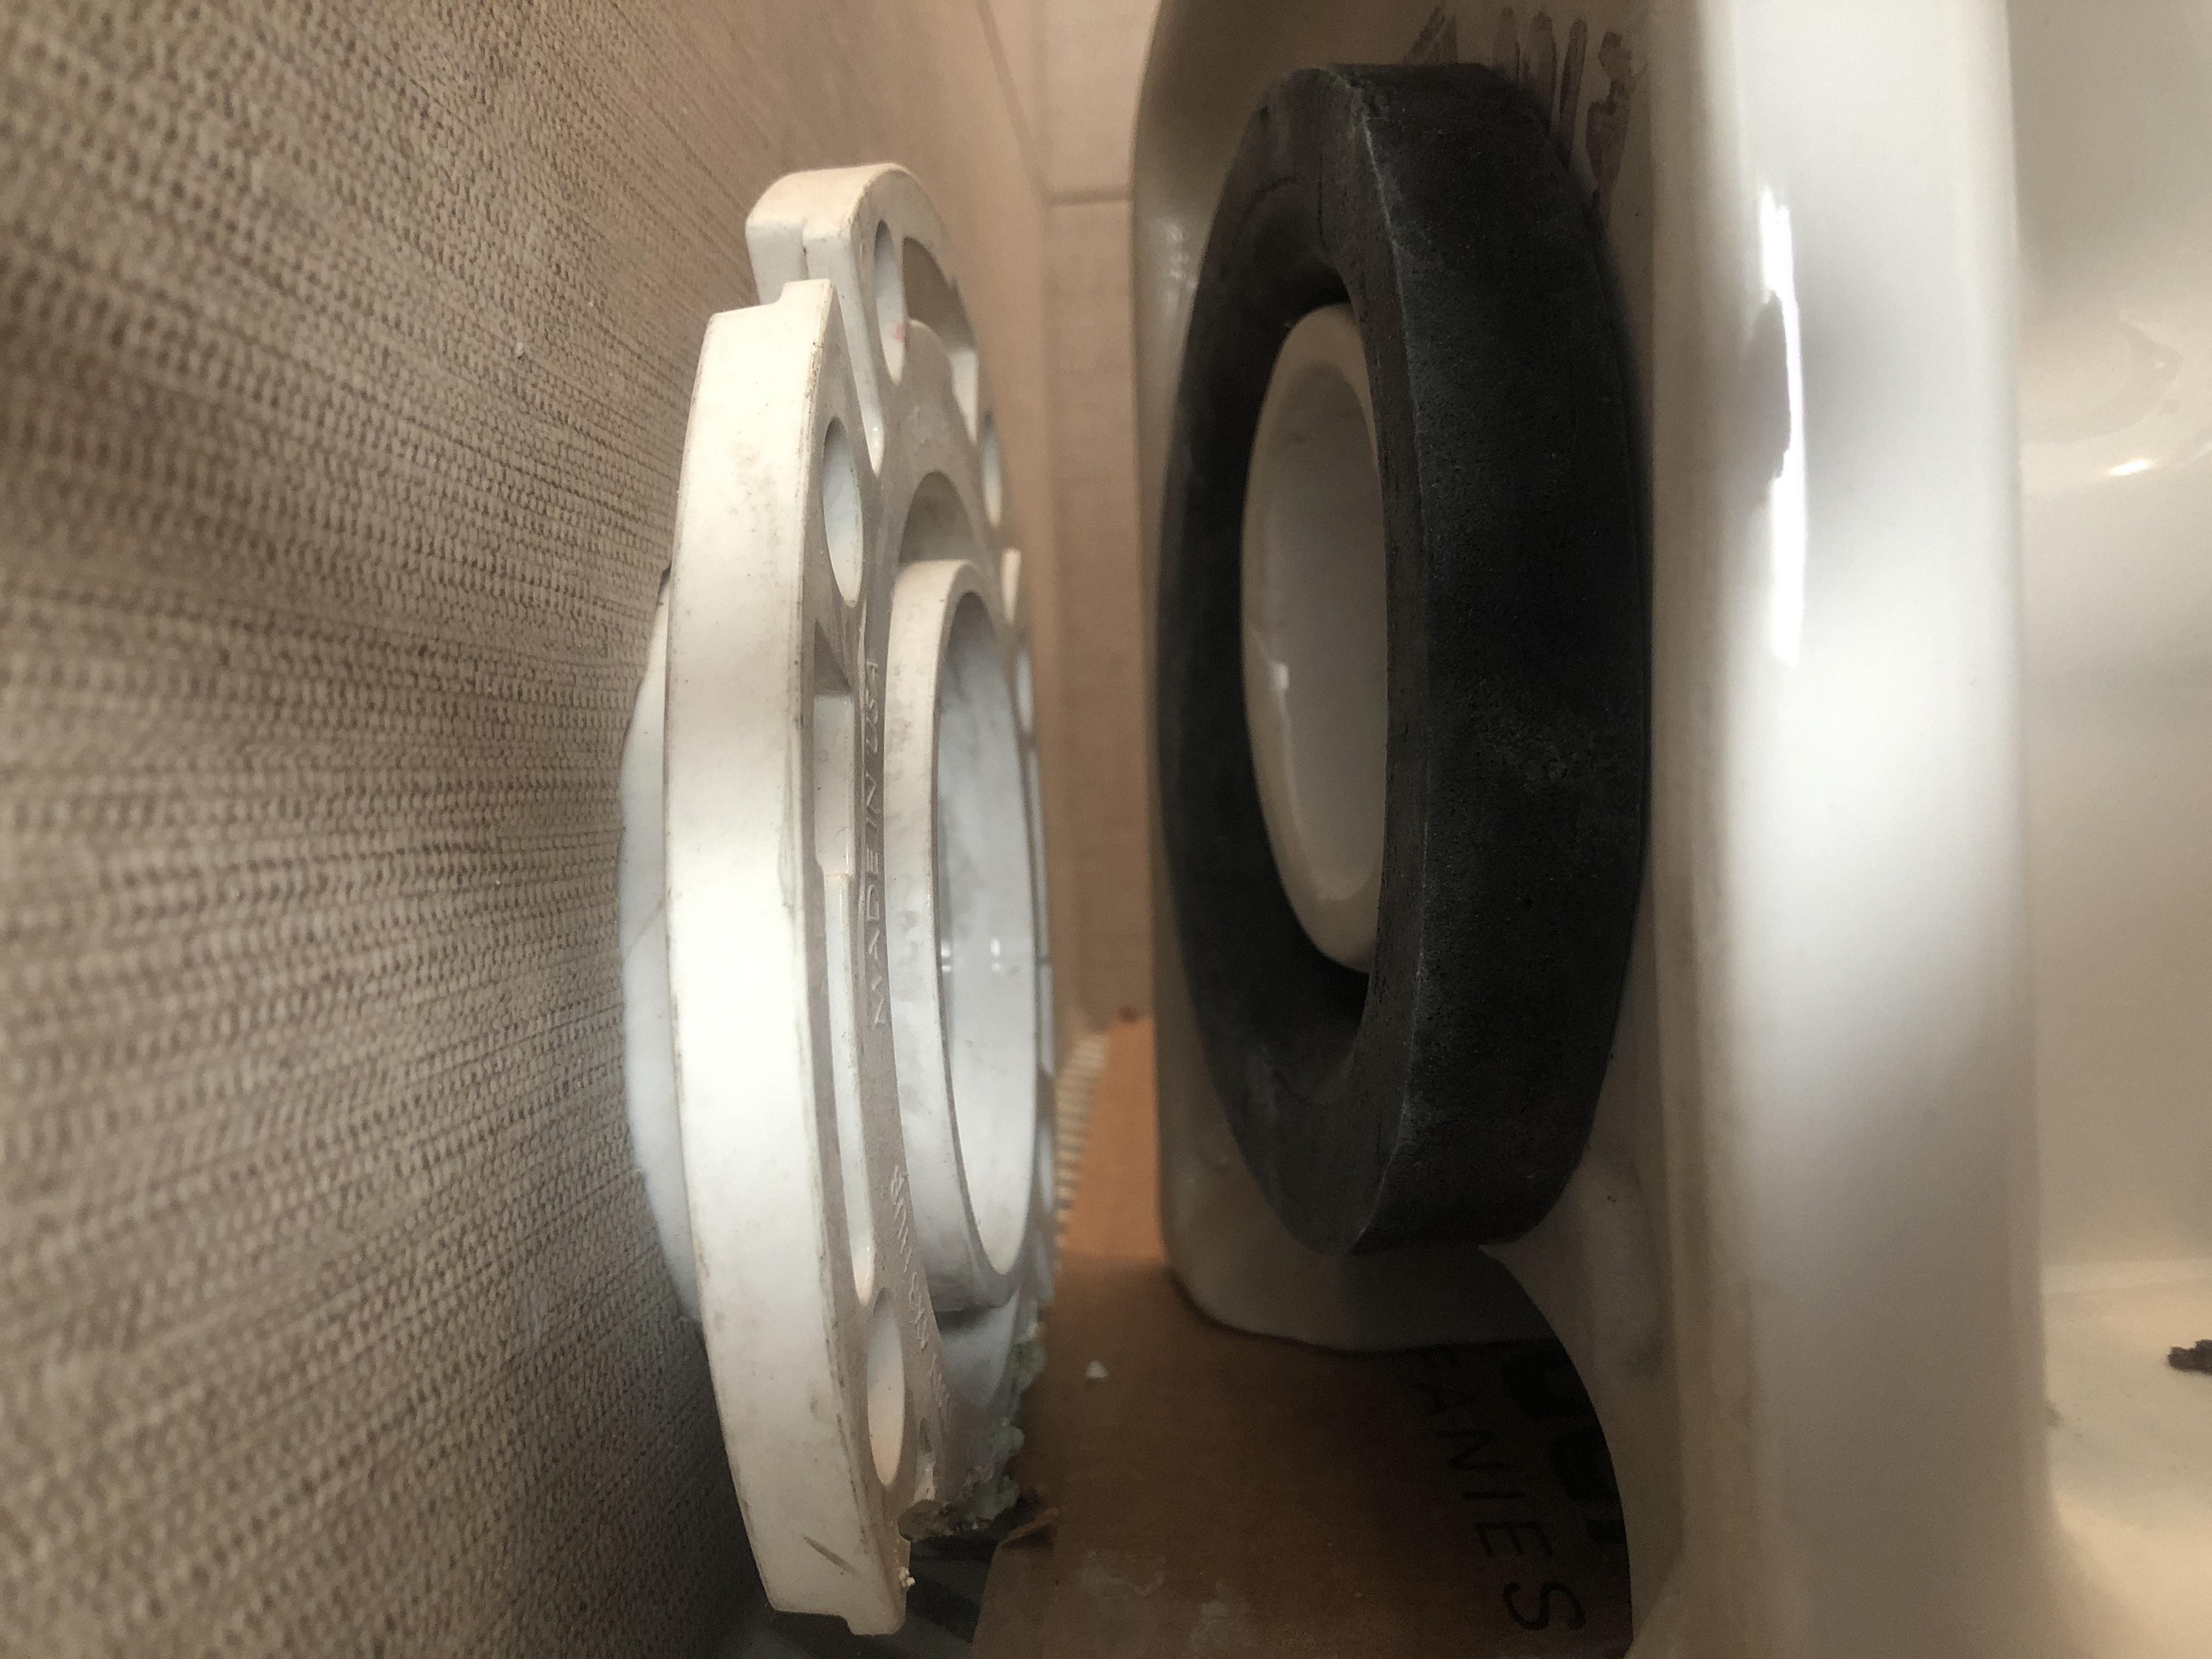 In Need Of 3inch Street Offset Flange Cant Find One Do They Exist Rear Outlet Toilet Sits Too High Contractor Raised Floor Too High Removing Tiles Is The Last Resort If Such